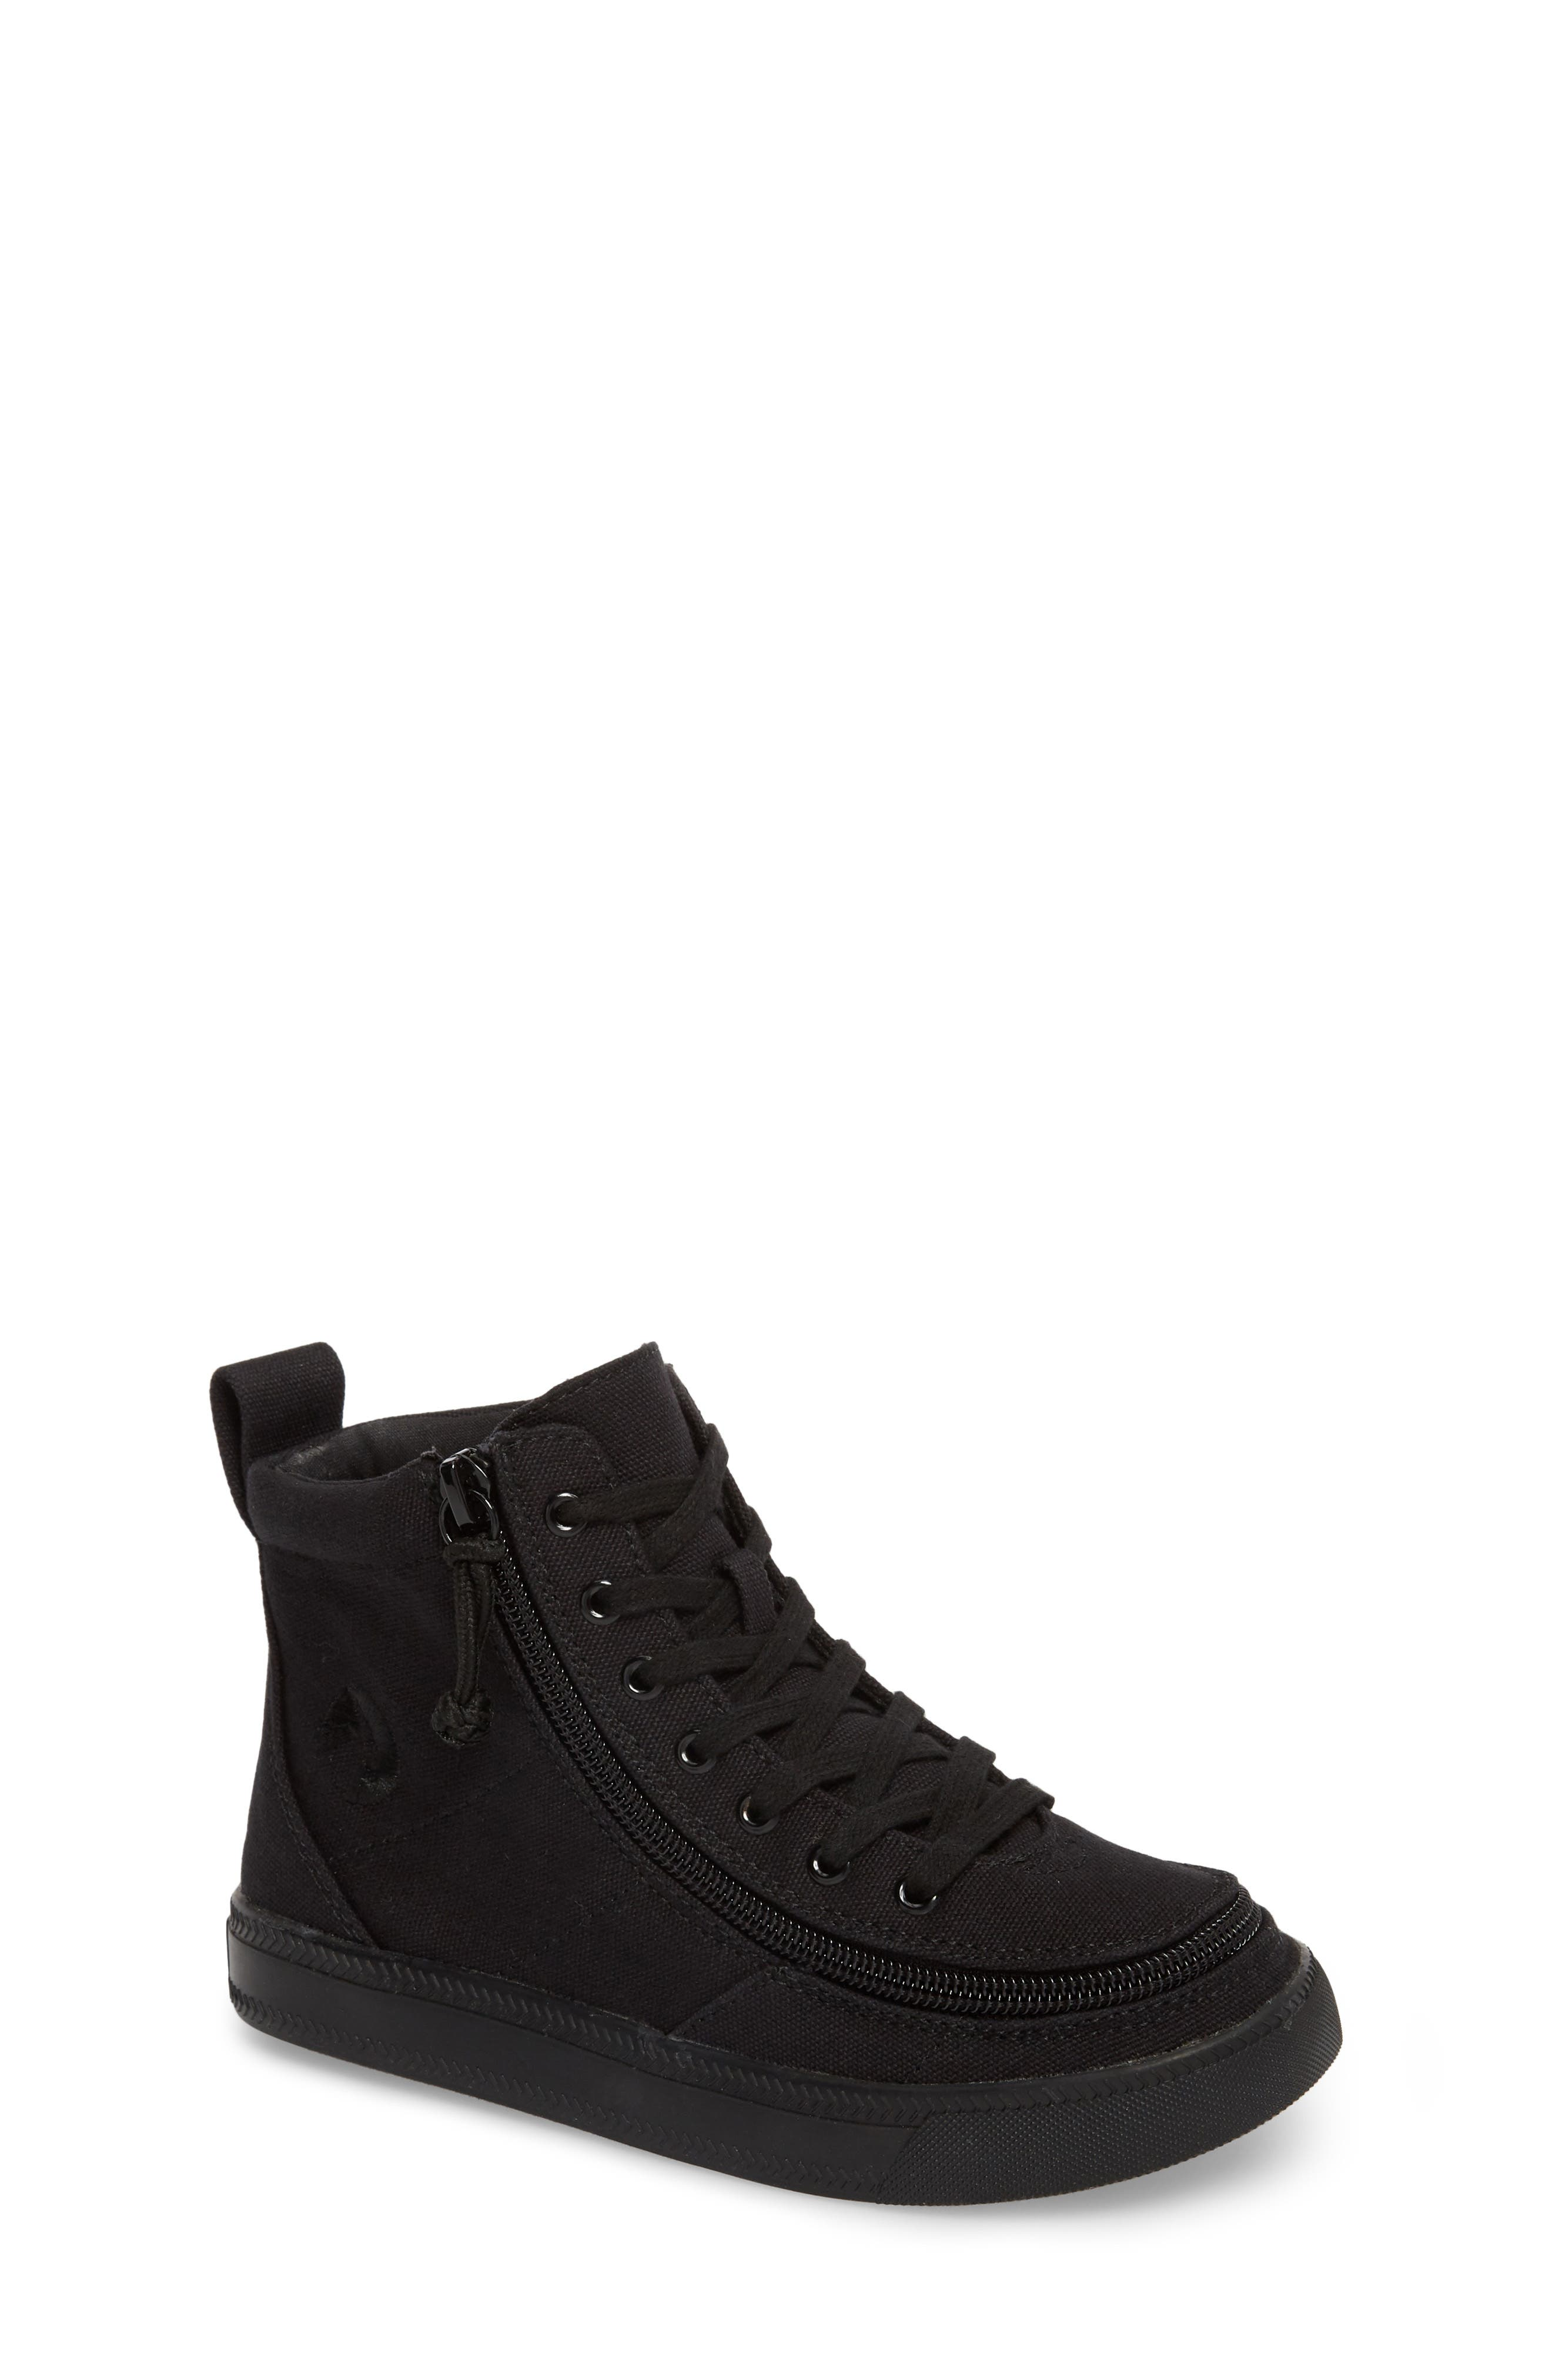 BILLY FOOTWEAR, Classic Hi-Rise Sneaker, Main thumbnail 1, color, BLACK TO THE FLOOR